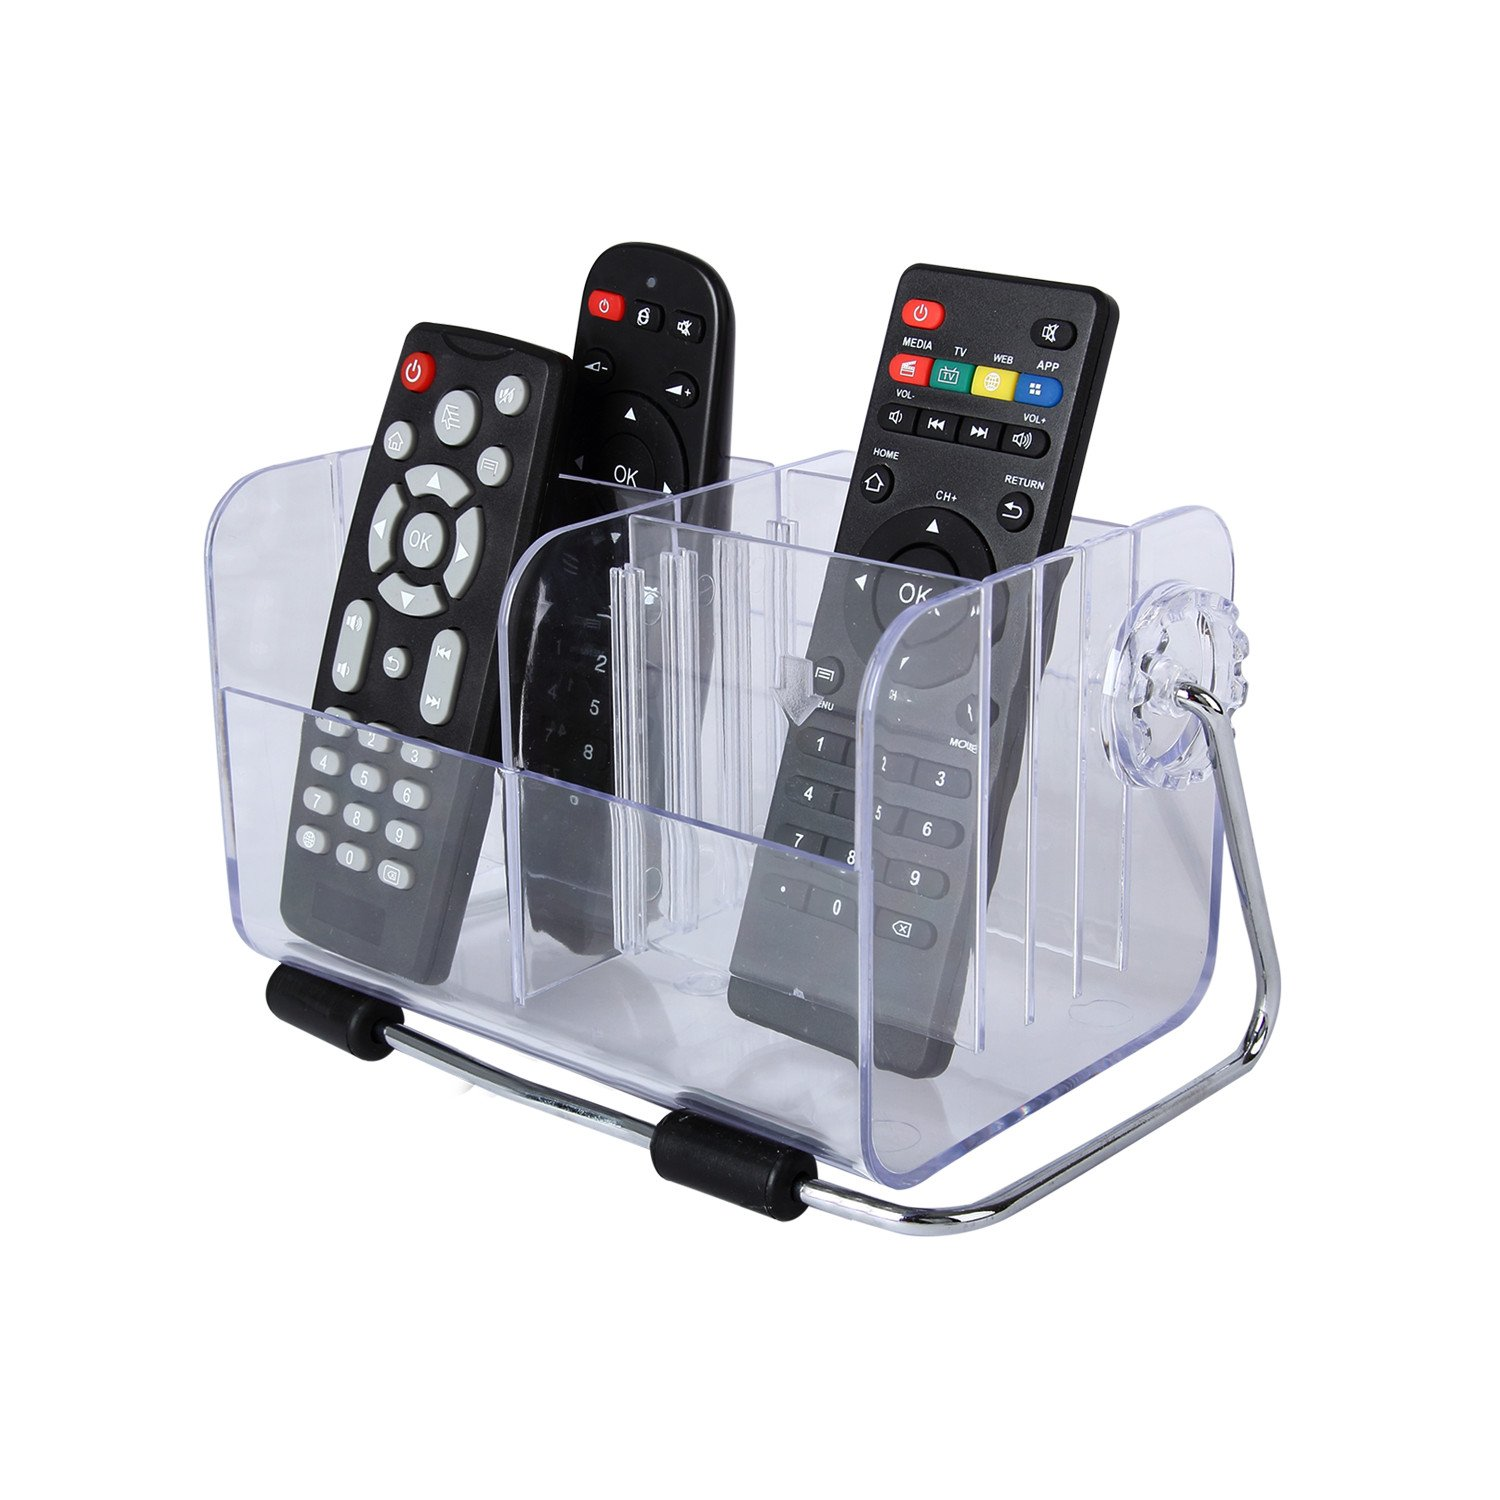 Acecharming Clear Desktop Remote Control Holder/Organizer Media Storage - Holds up to 6 Remotes